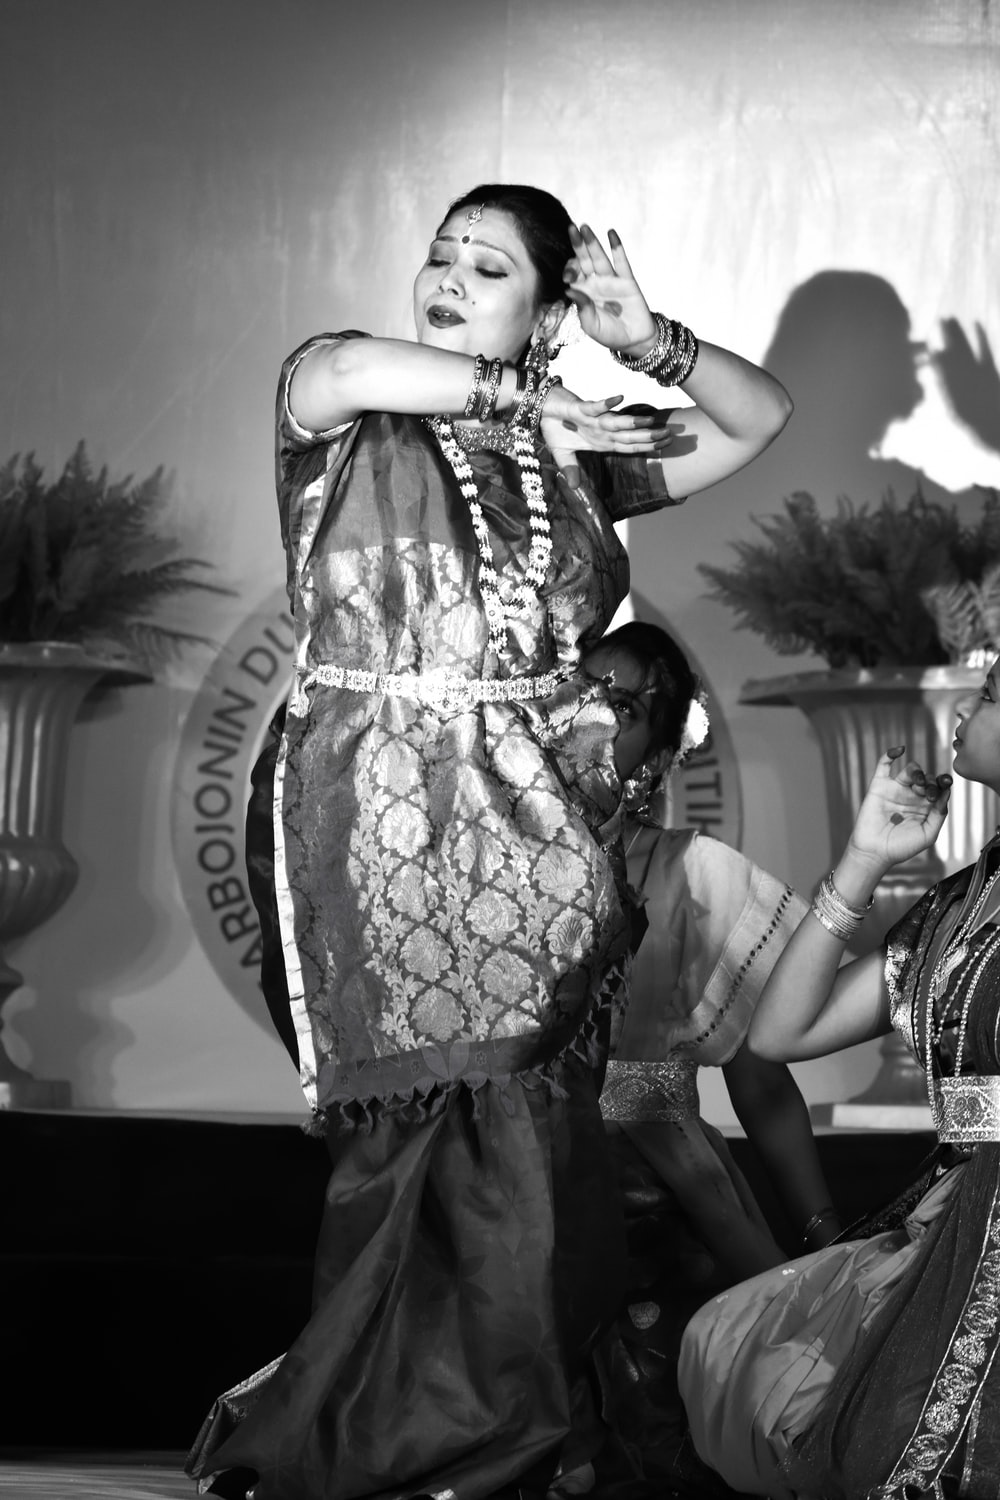 grayscale photography of woman dancing